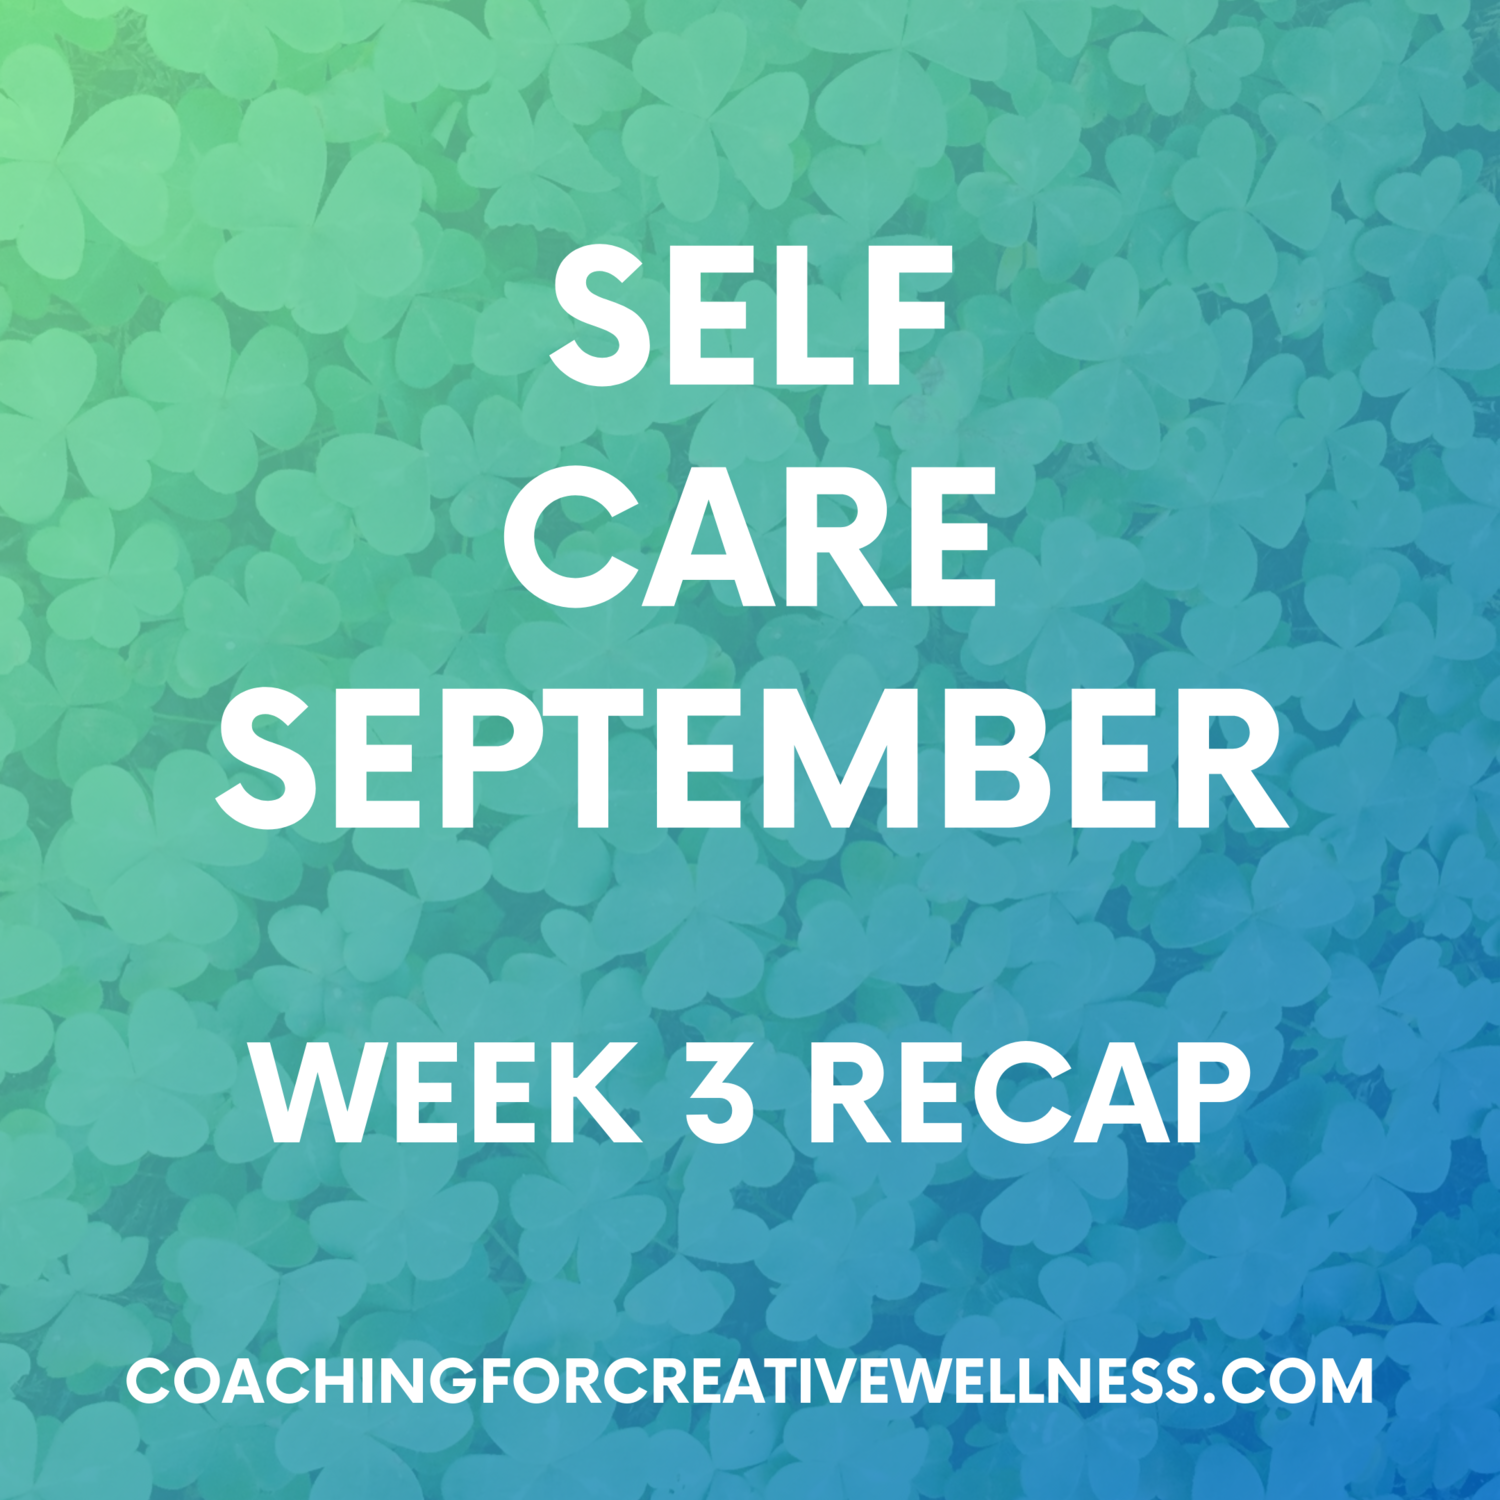 Coaching-for-Creative-Wellness-Self-Care-September-Wk3-recap.png